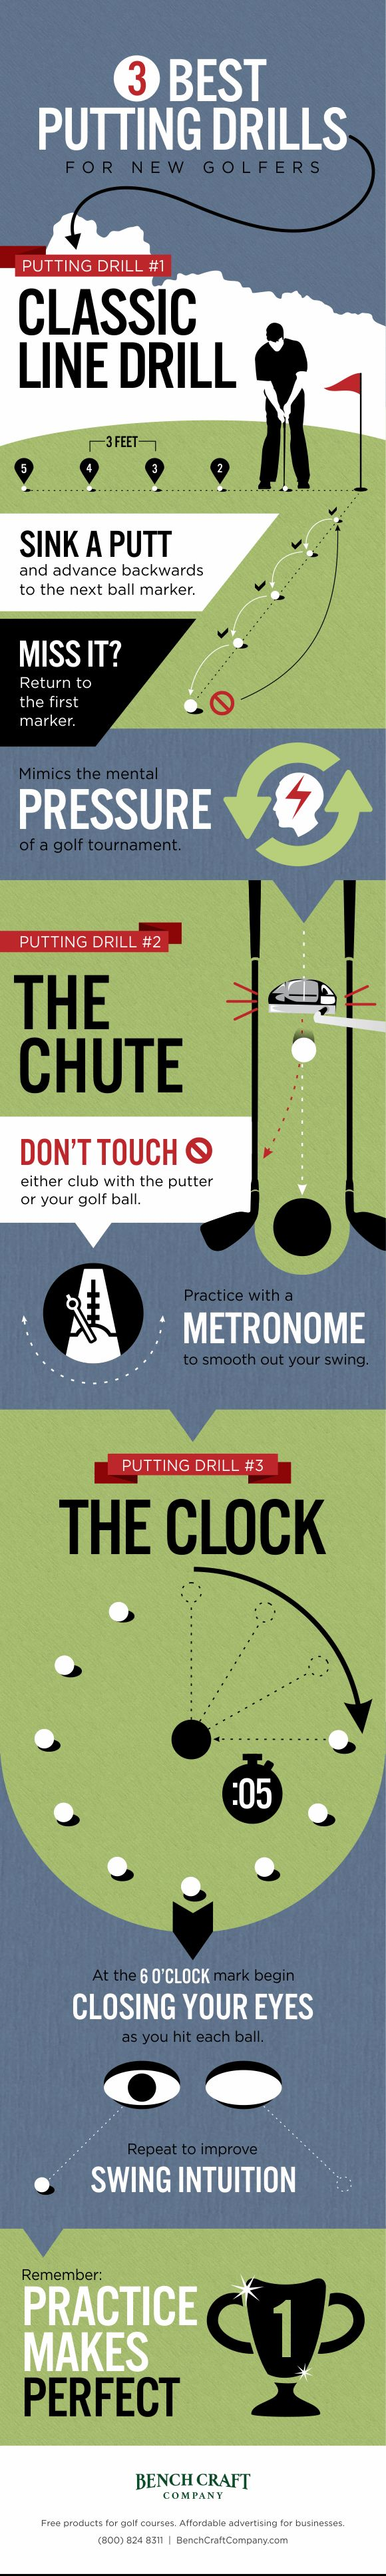 http://benchcraftcompany.com/best-putting-drills/ The 3 BEST putting drills for new golfers!  Each of these putting drills will help new golfer improve their short game the next time they hit the golf course. Lots of easy to understand illustrations and examples too.